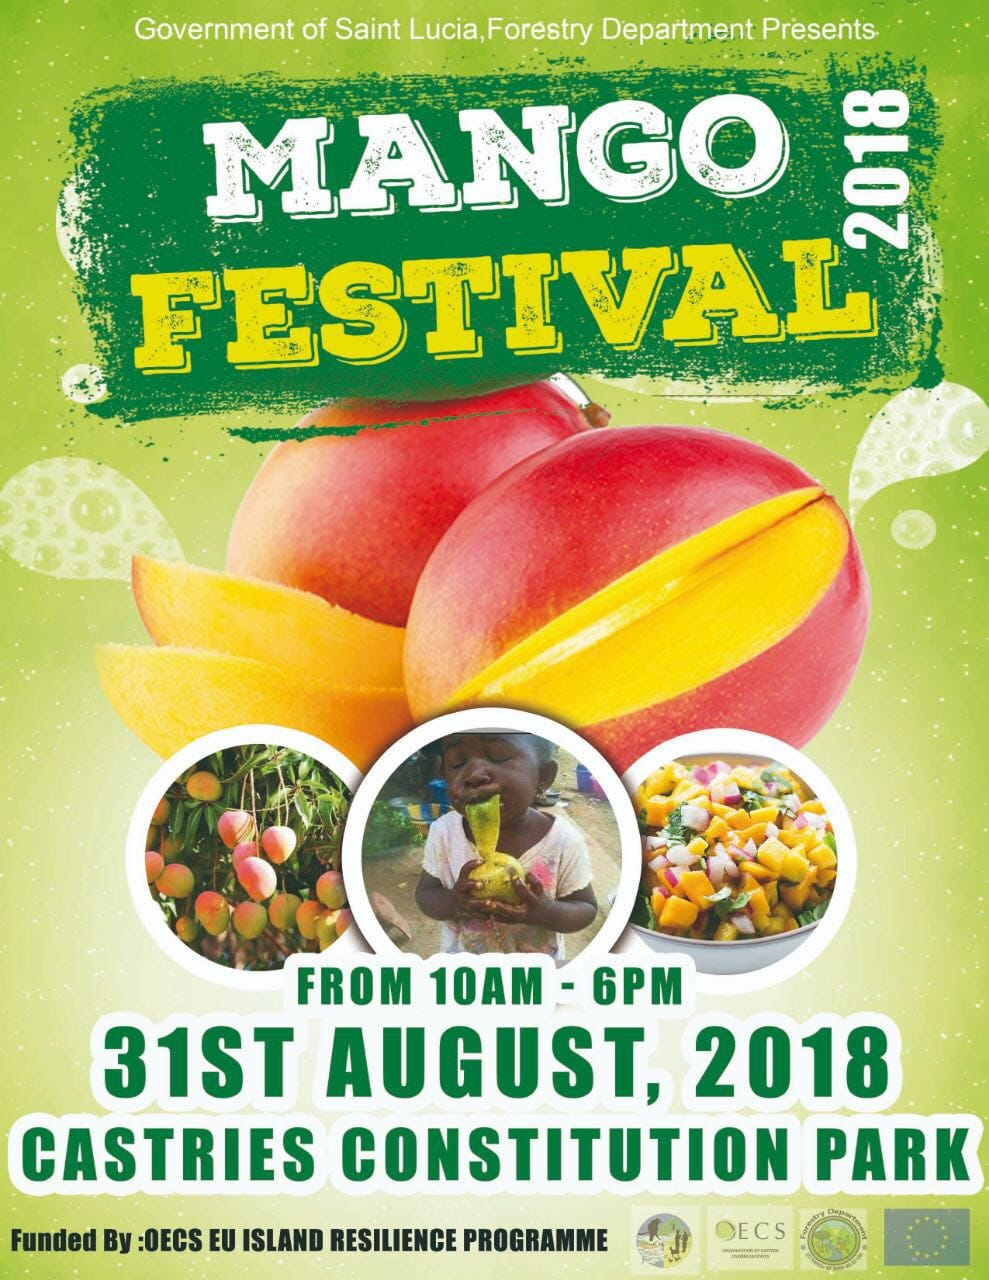 Mango food festival - constitution park castries - come try all sorts of mango delights